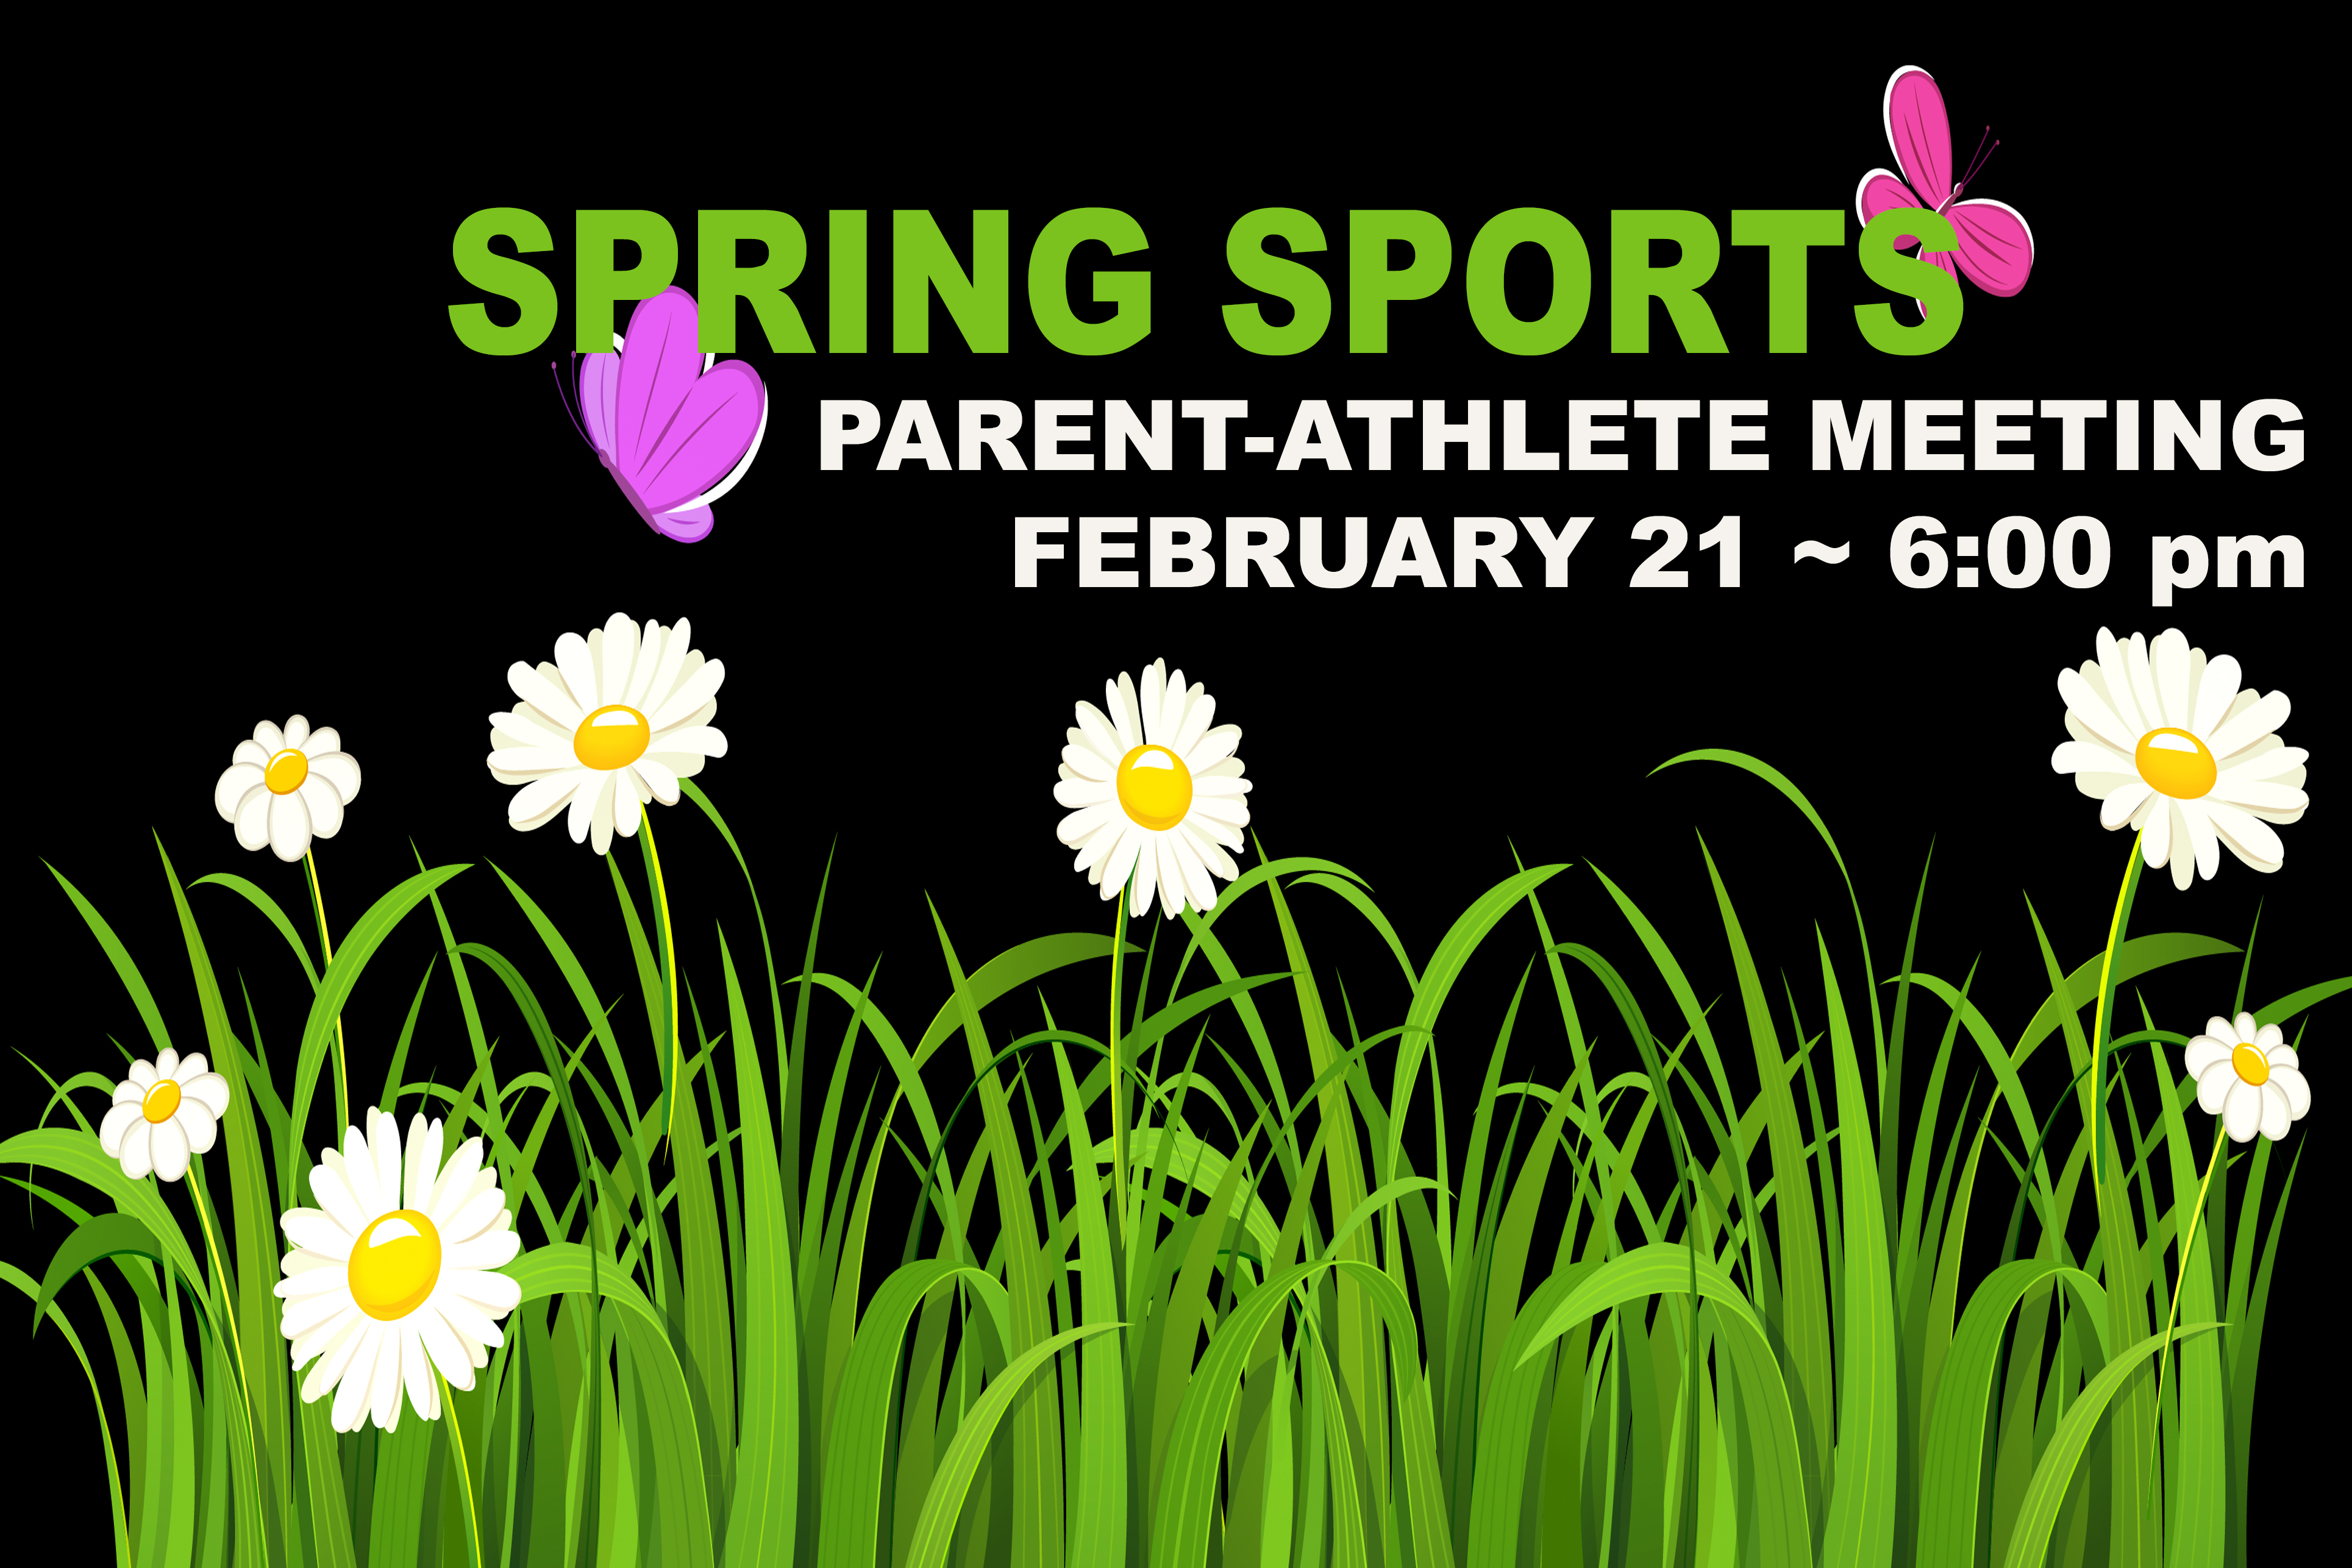 SPRING SPORTS MEETING IS WEDNESDAY NIGHT!